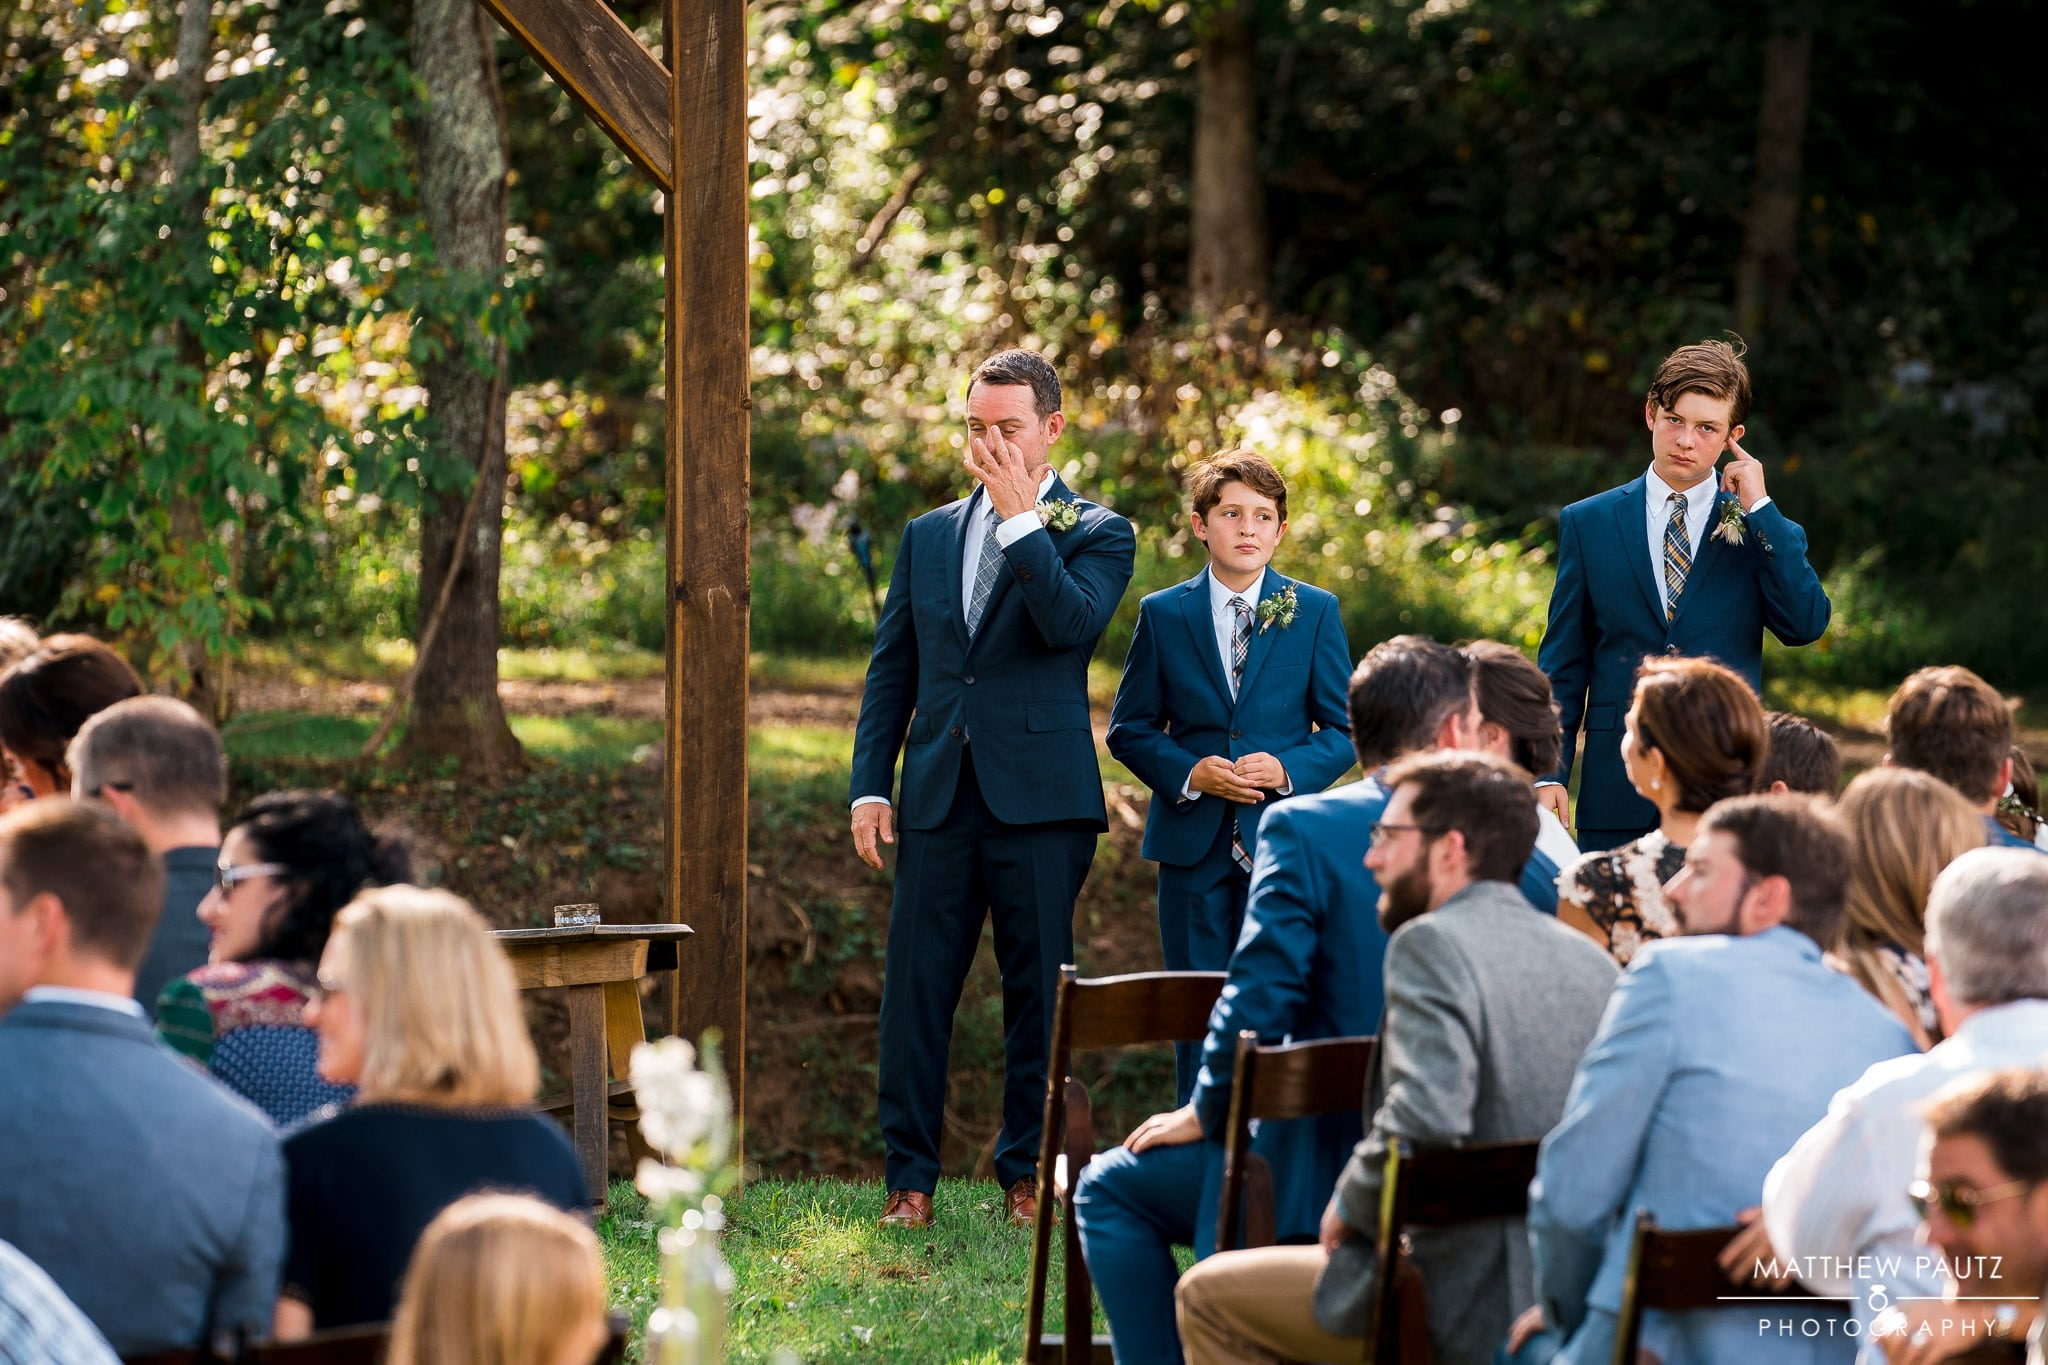 Groom wiping tear from eye after seeing bride at wedding ceremony